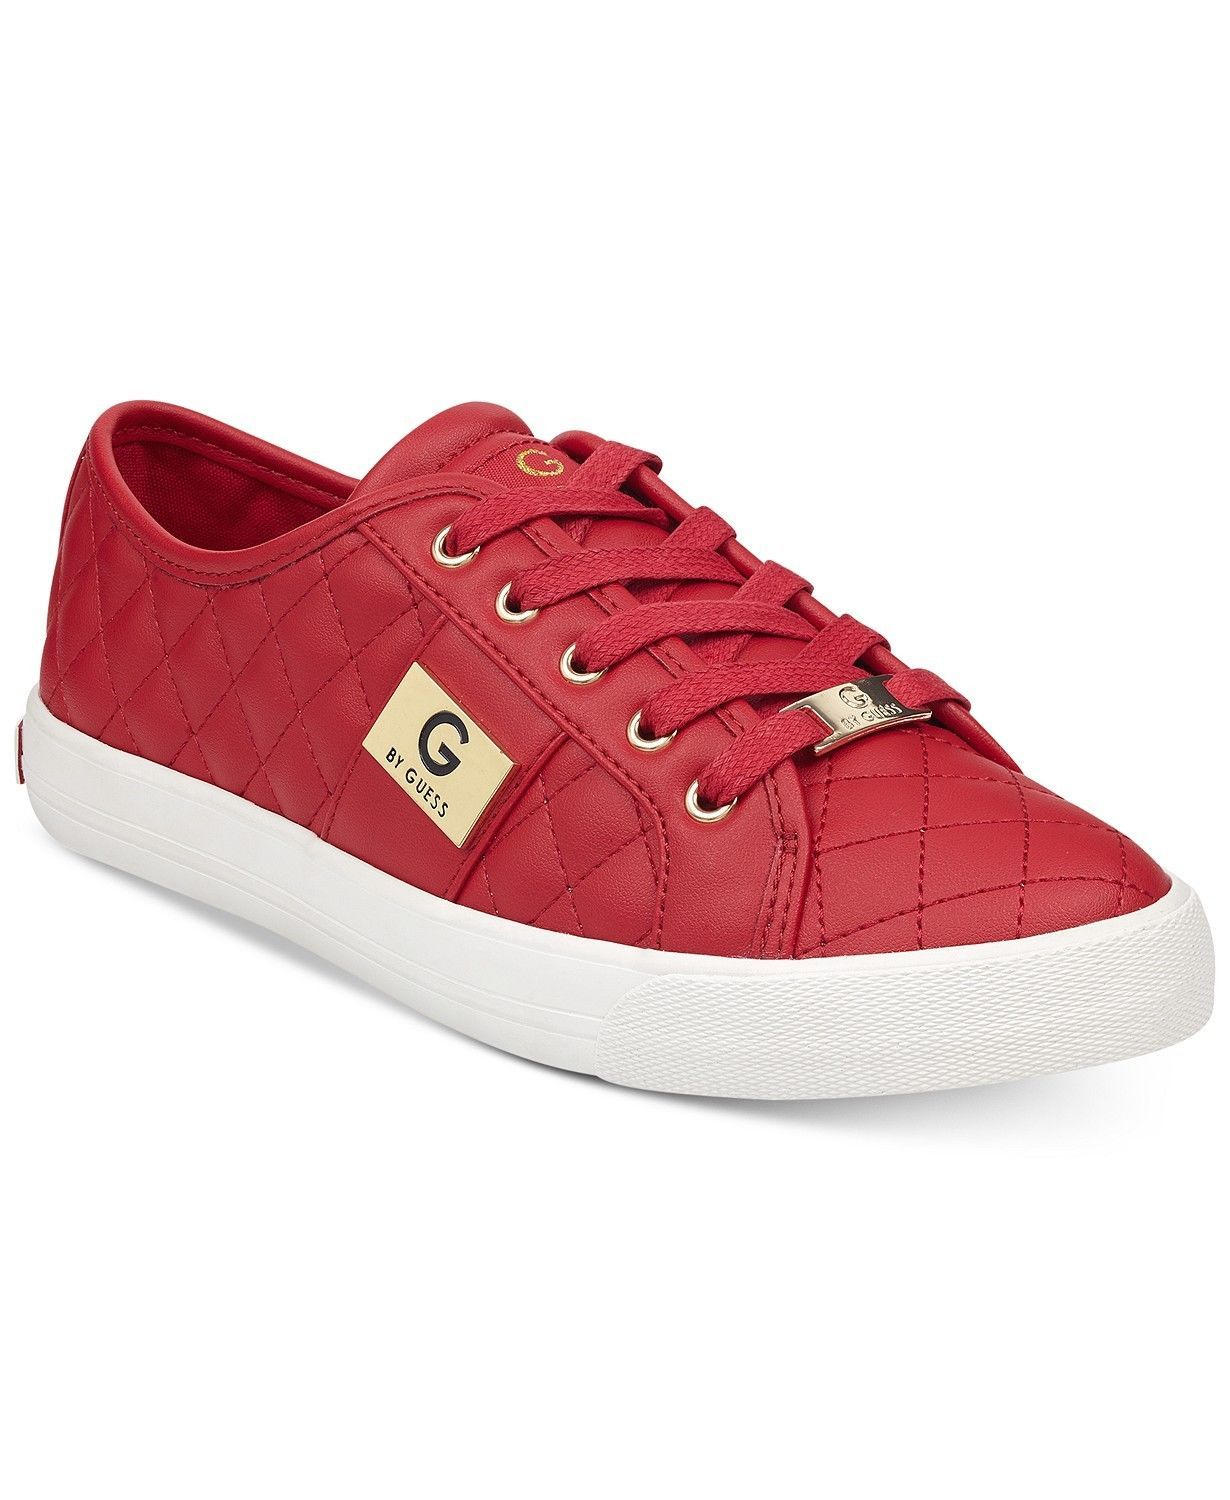 7828c9c86f7 G by Guess Women s Backer2 Lace Up Leather Quilted Pattern Sneakers ...